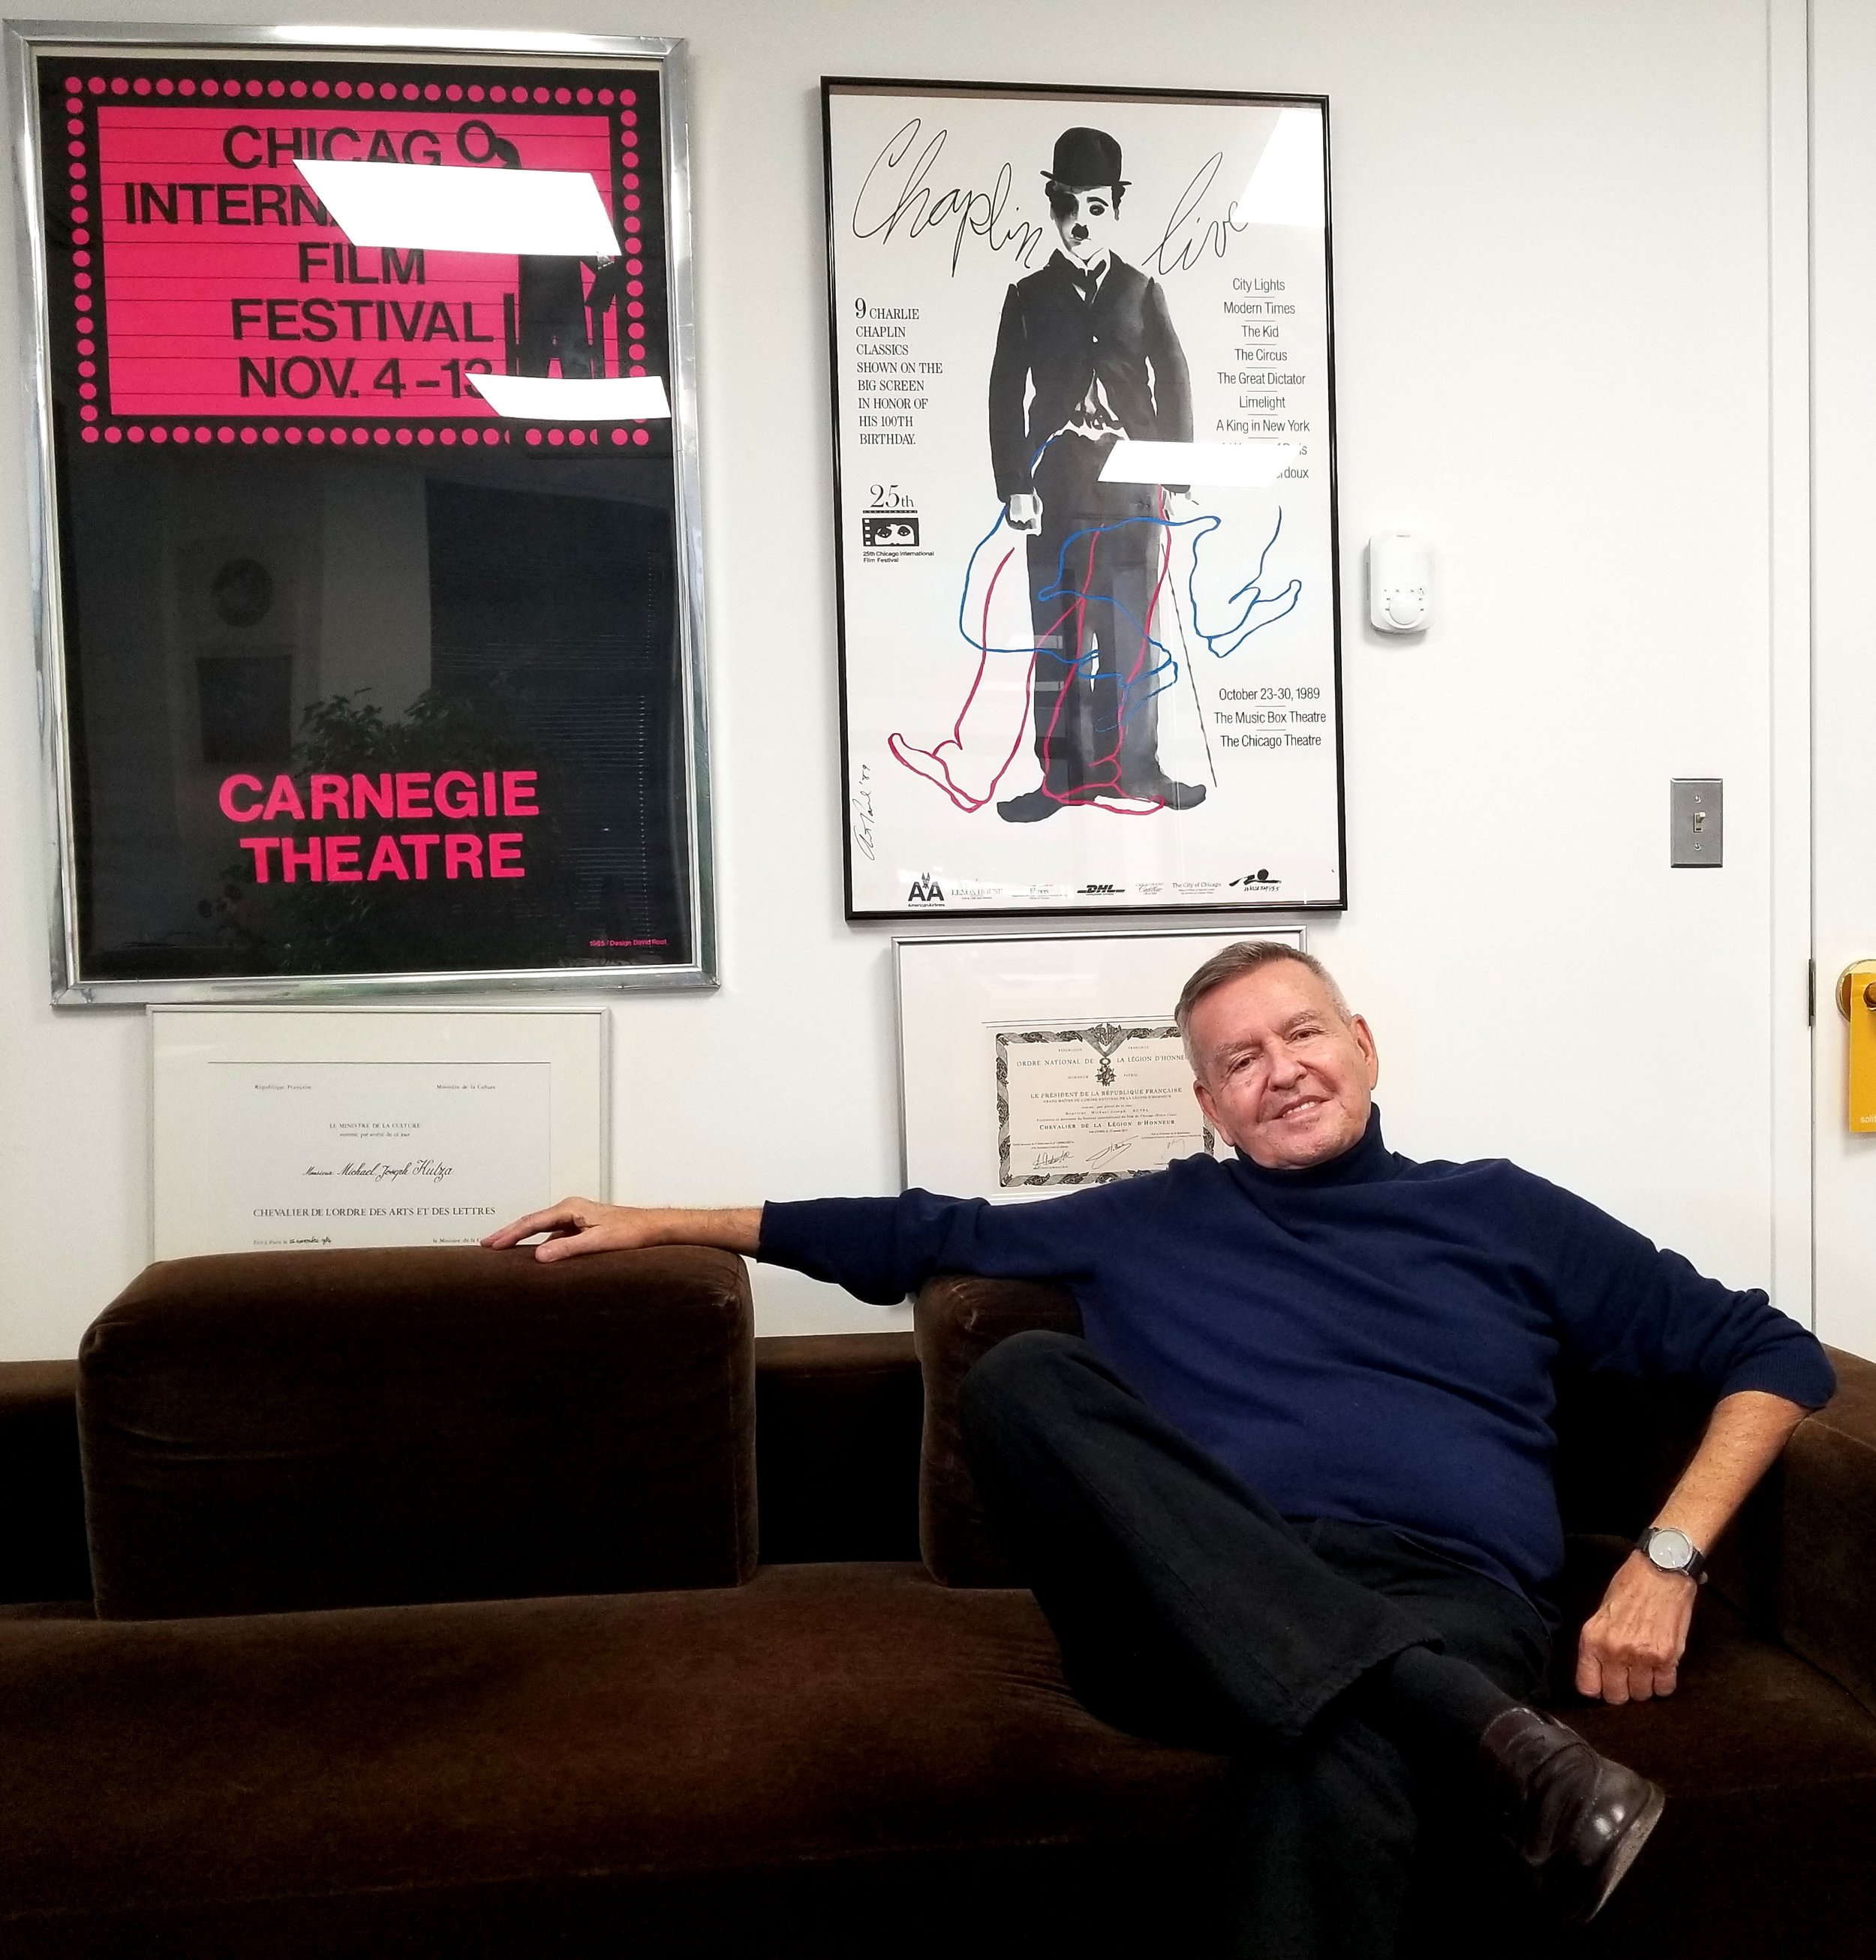 Chicago International Film Festival Founder/CEO Michael Kutza in his office. Above him to the left is the poster for the inaugural Chicago International Film Festival.